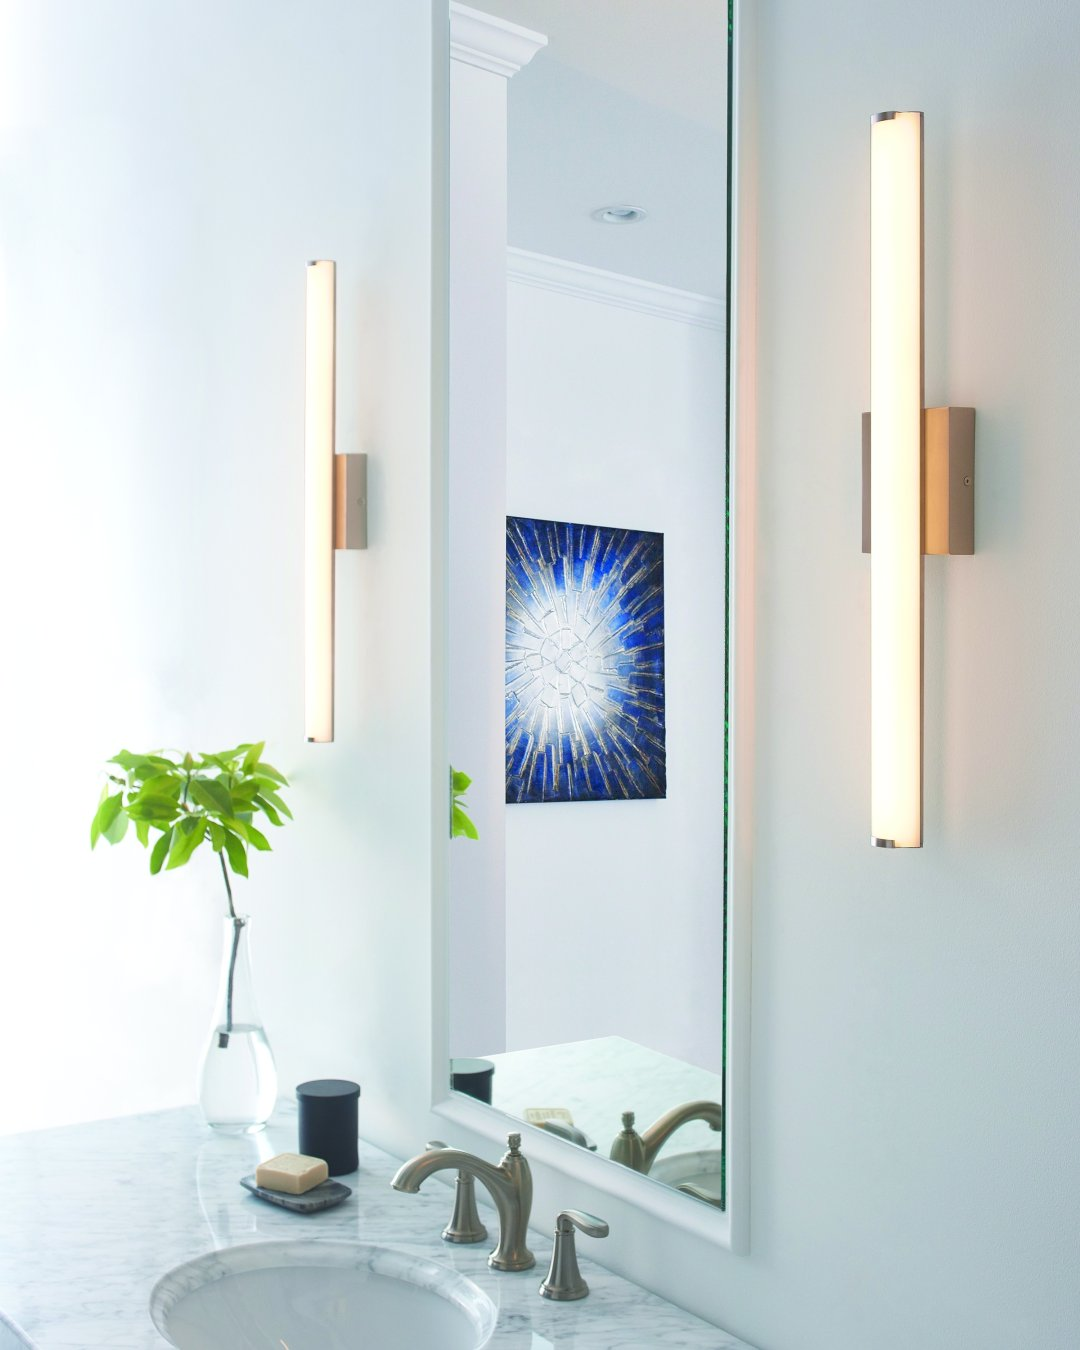 Bathroom Lighting Ideas Led bathroom lighting ideas | 3 tips for better bath lighting at